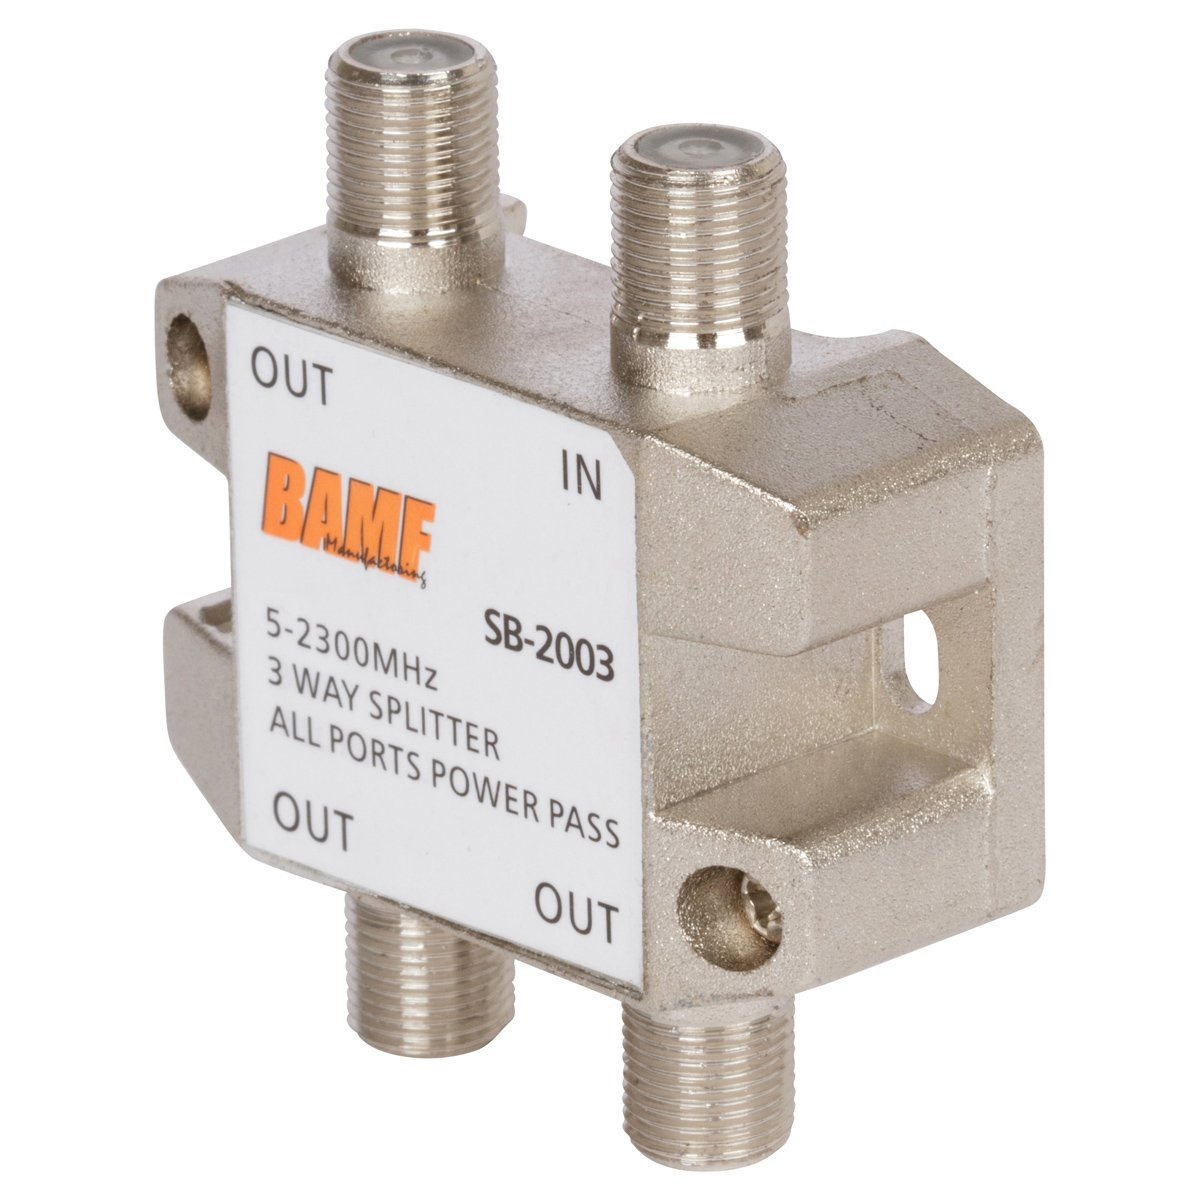 BAMF 3-Way Coax Cable Splitter Bi-Directional MoCA 5-2300MHz by BAMF Manufacturing (Image #3)